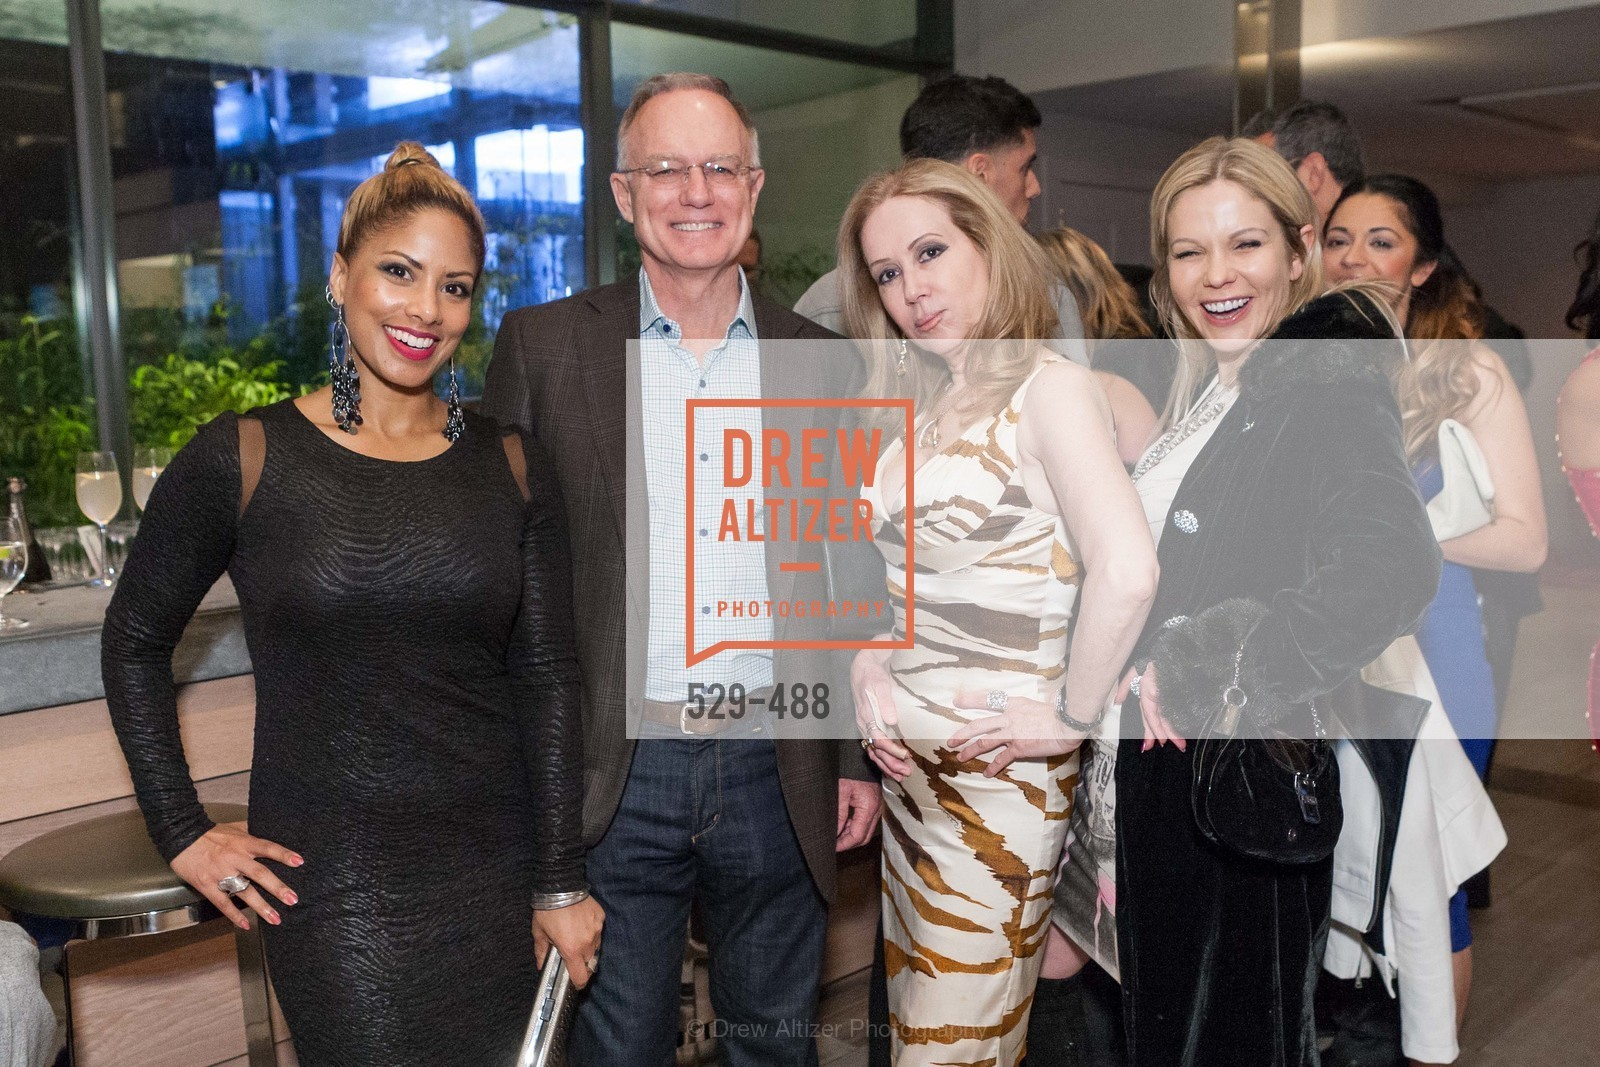 Don DuBain, Sophie Azouaou, Tatiana Takaeva, SONYA MOLODETSKAYA's Birthday Party, US. The Battery Penthouse, April 1st, 2014,Drew Altizer, Drew Altizer Photography, full-service agency, private events, San Francisco photographer, photographer california